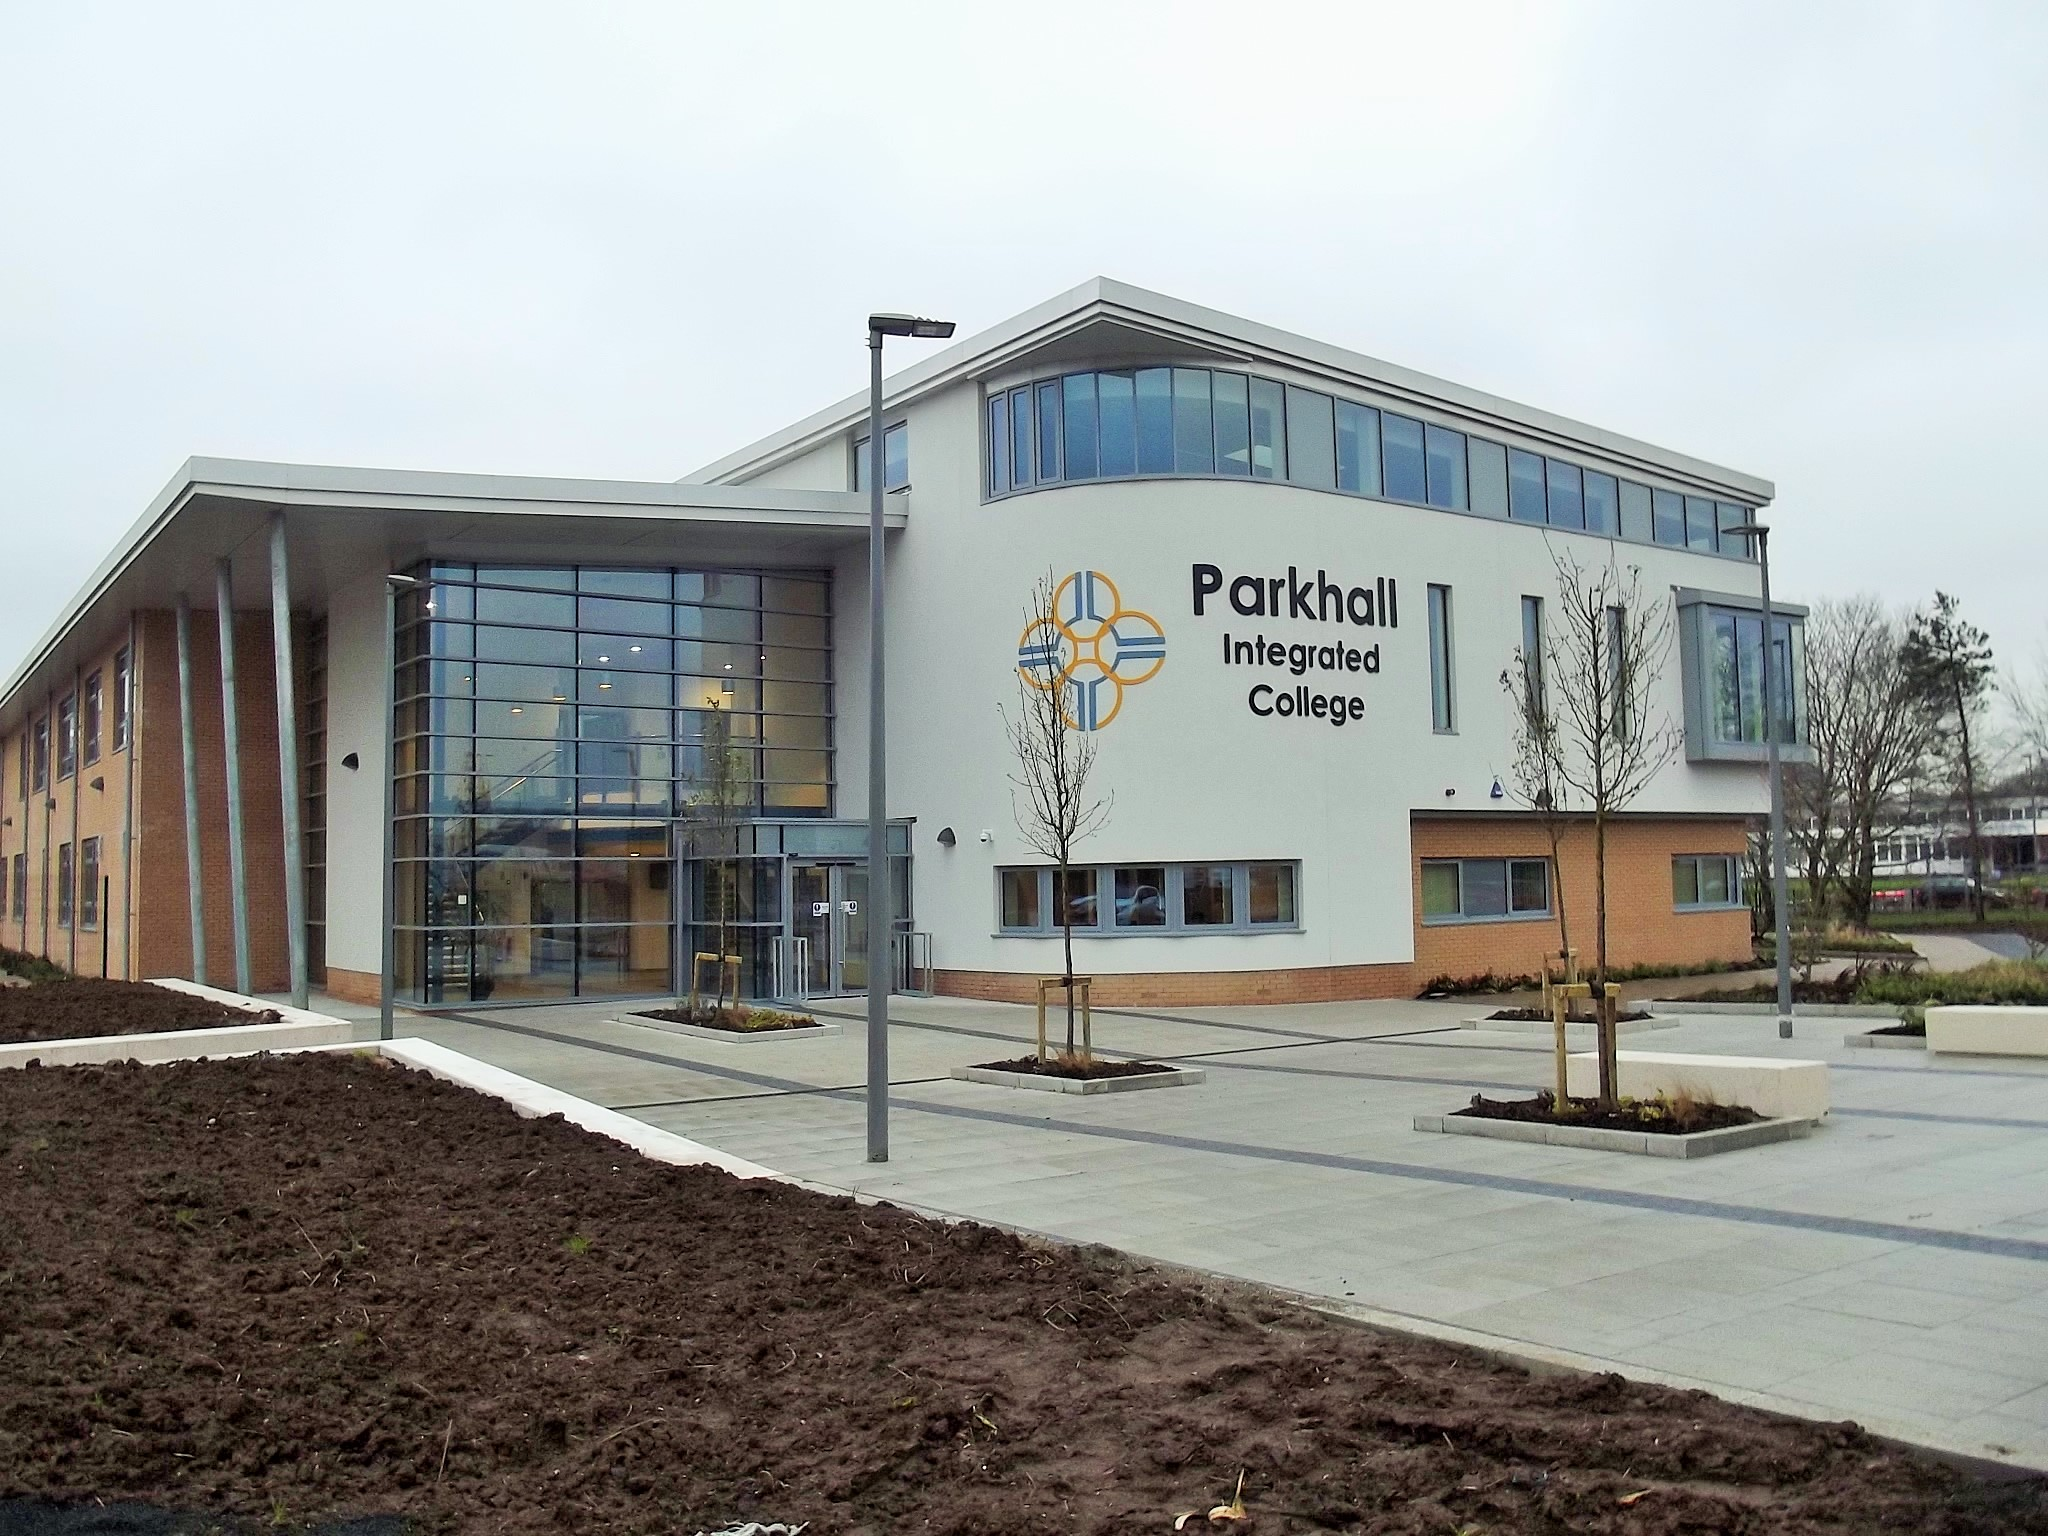 Parkhall Integrated College